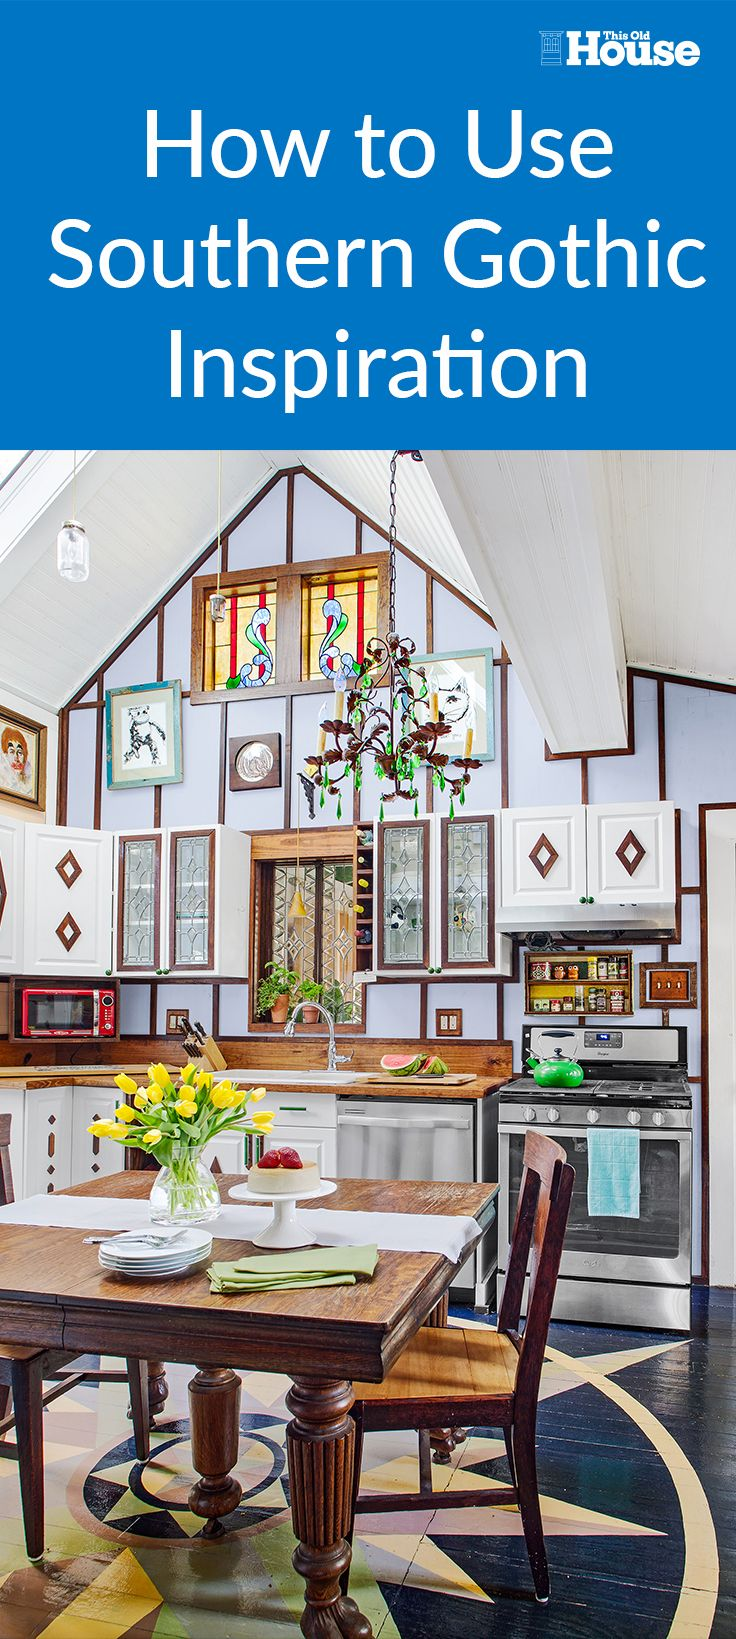 Southern Gothic: A Folk Victorian Remodel